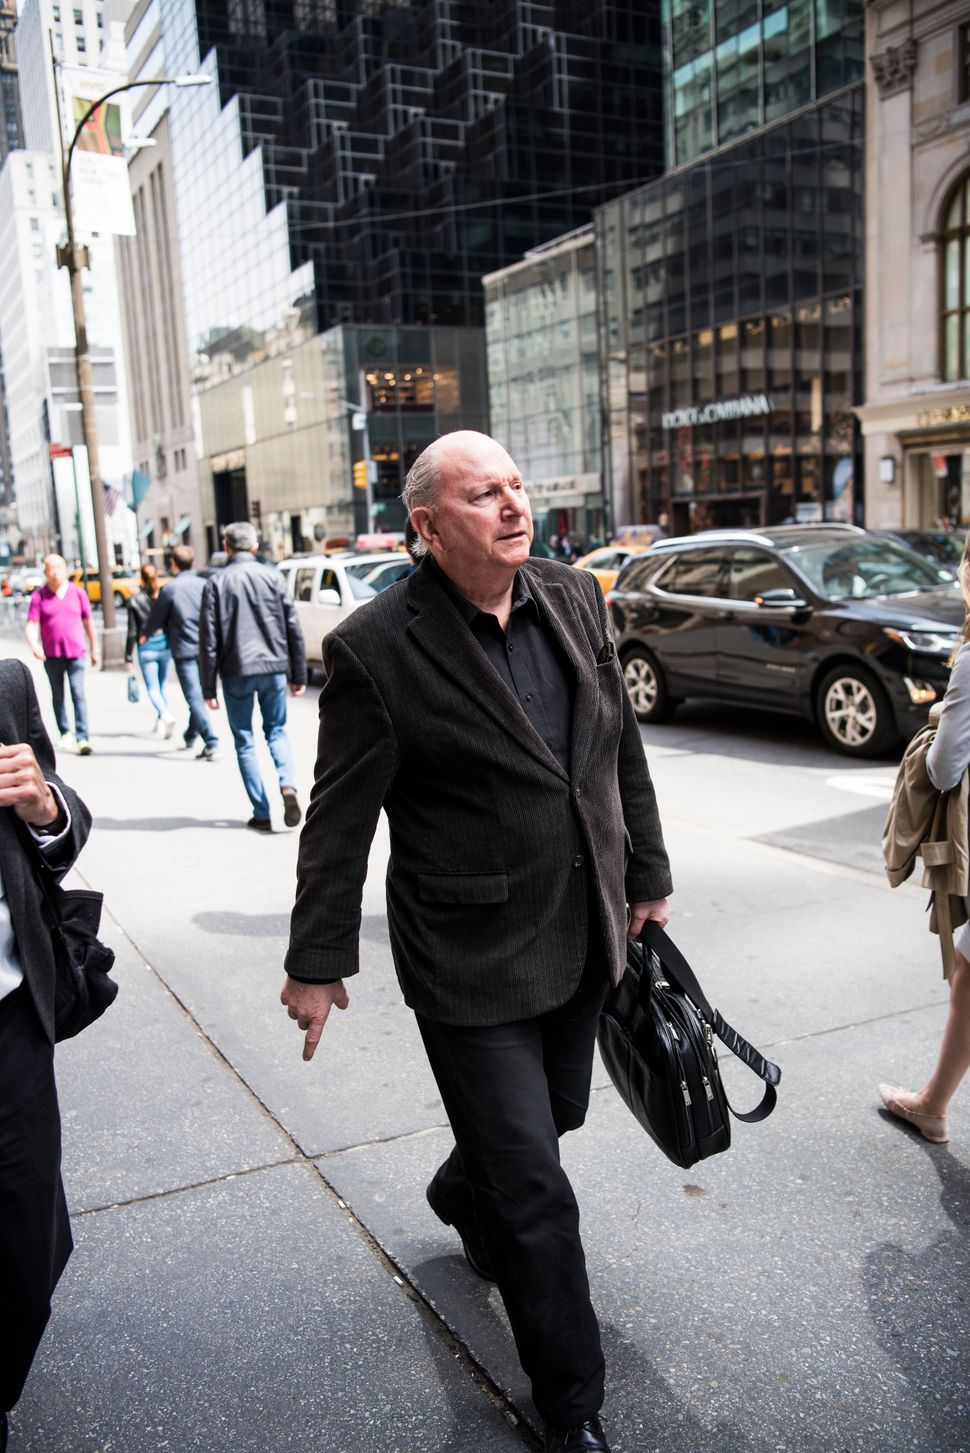 Jerome Rose walks along Fifth Avenue in Manhattan. He has moved to a ground-floor apartment after a fire in his previous